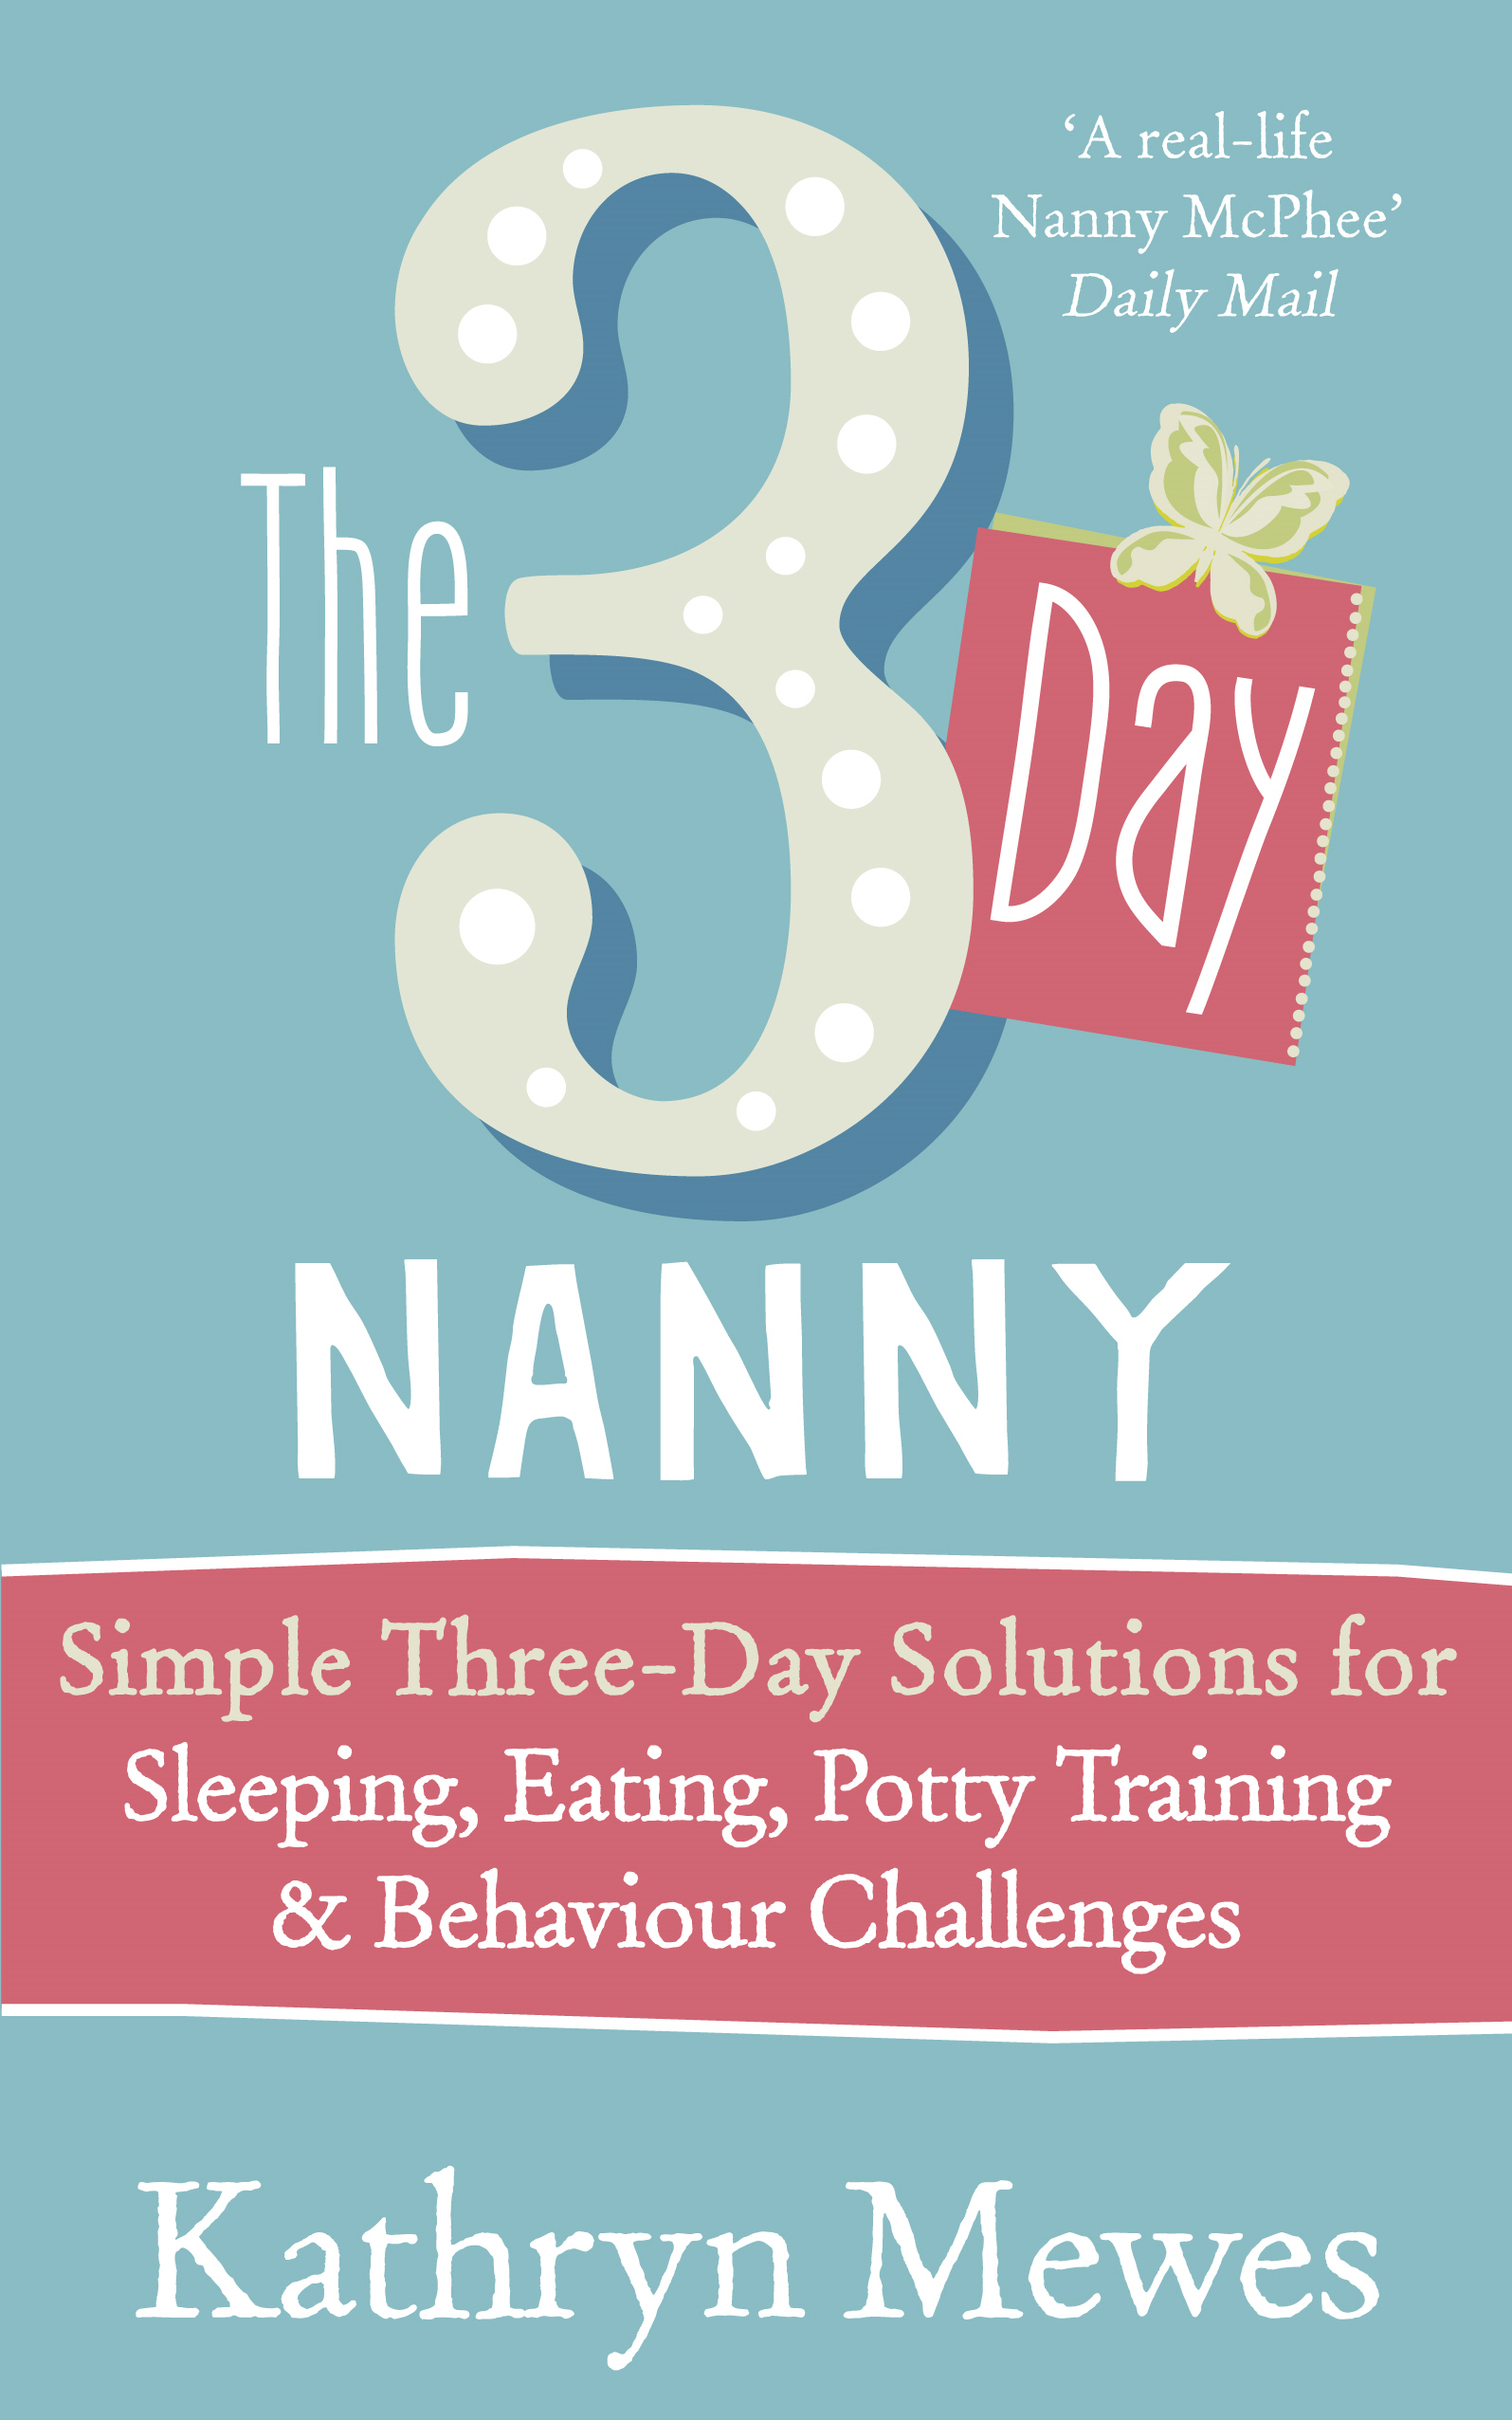 The 3-Day Nanny Simple 3-Day Solutions for Sleeping, Eating, Potty Training and Behaviour Challenges